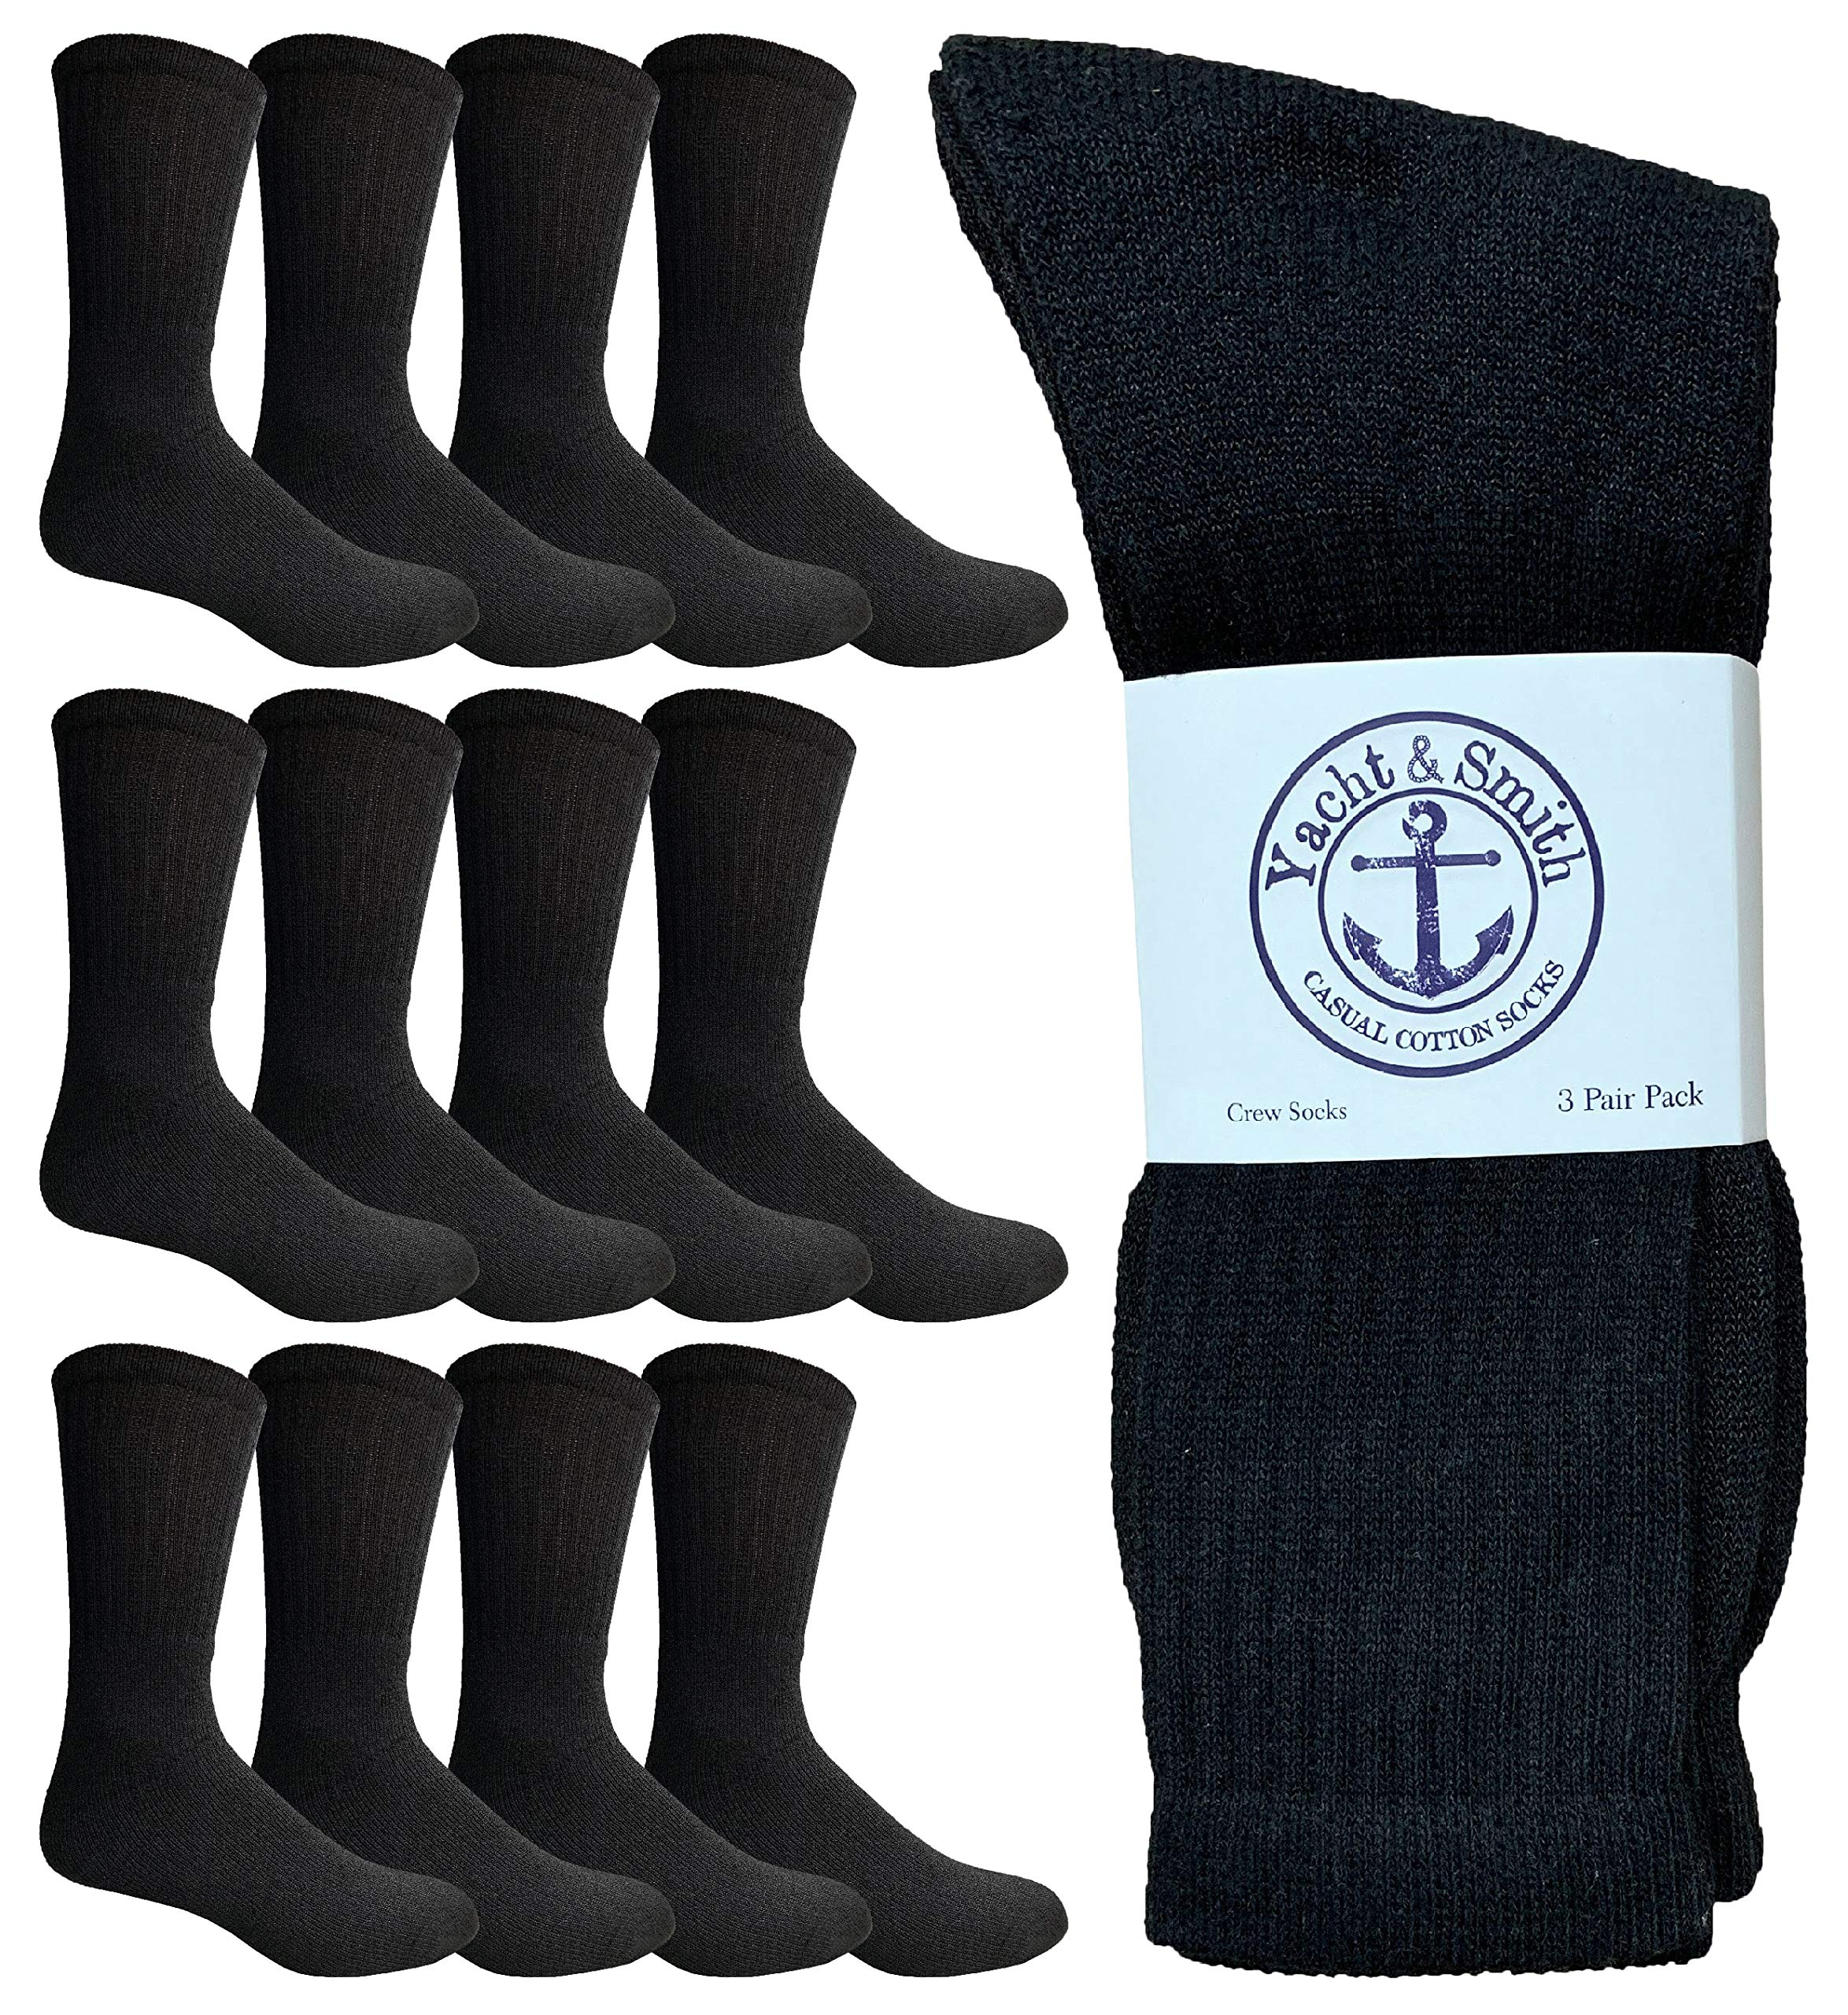 Yacht & Smith Wholesale Bulk Mens Crew Socks, Cotton Big And Tall Plus Size Socks Size 13-29 by Yacht & Smith